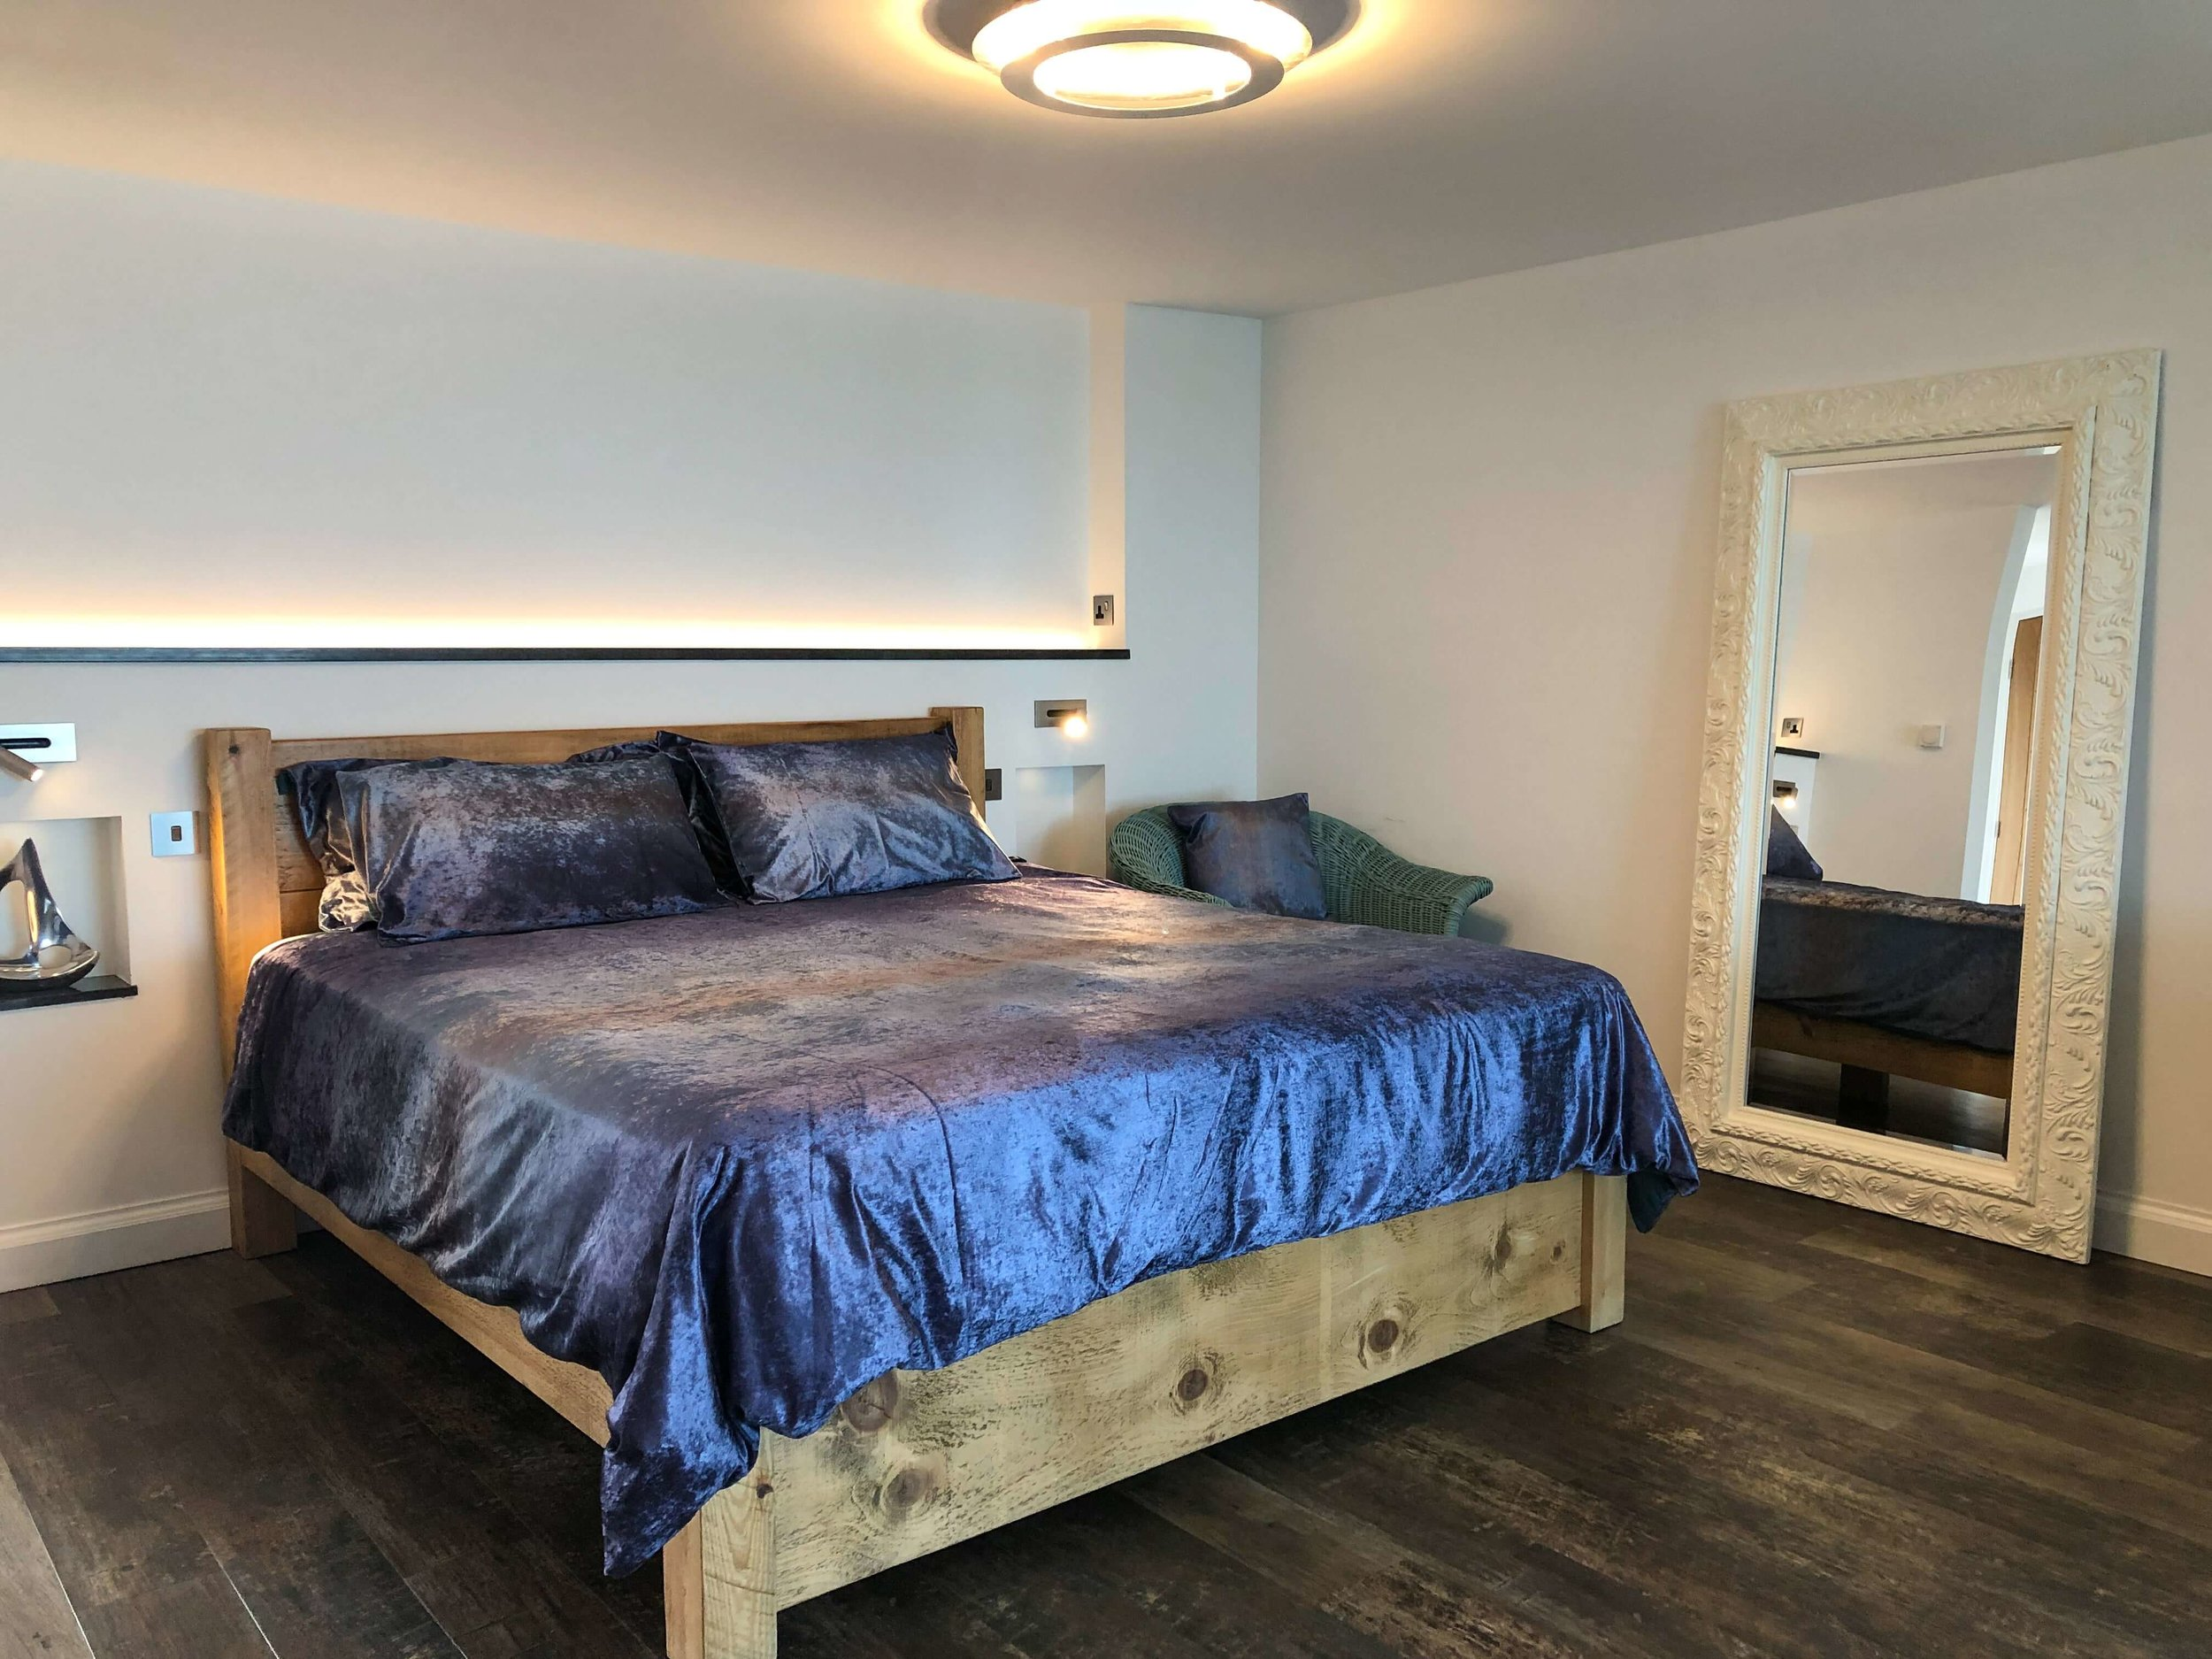 Super-king size bed in Silver Sea with LED feature lighting